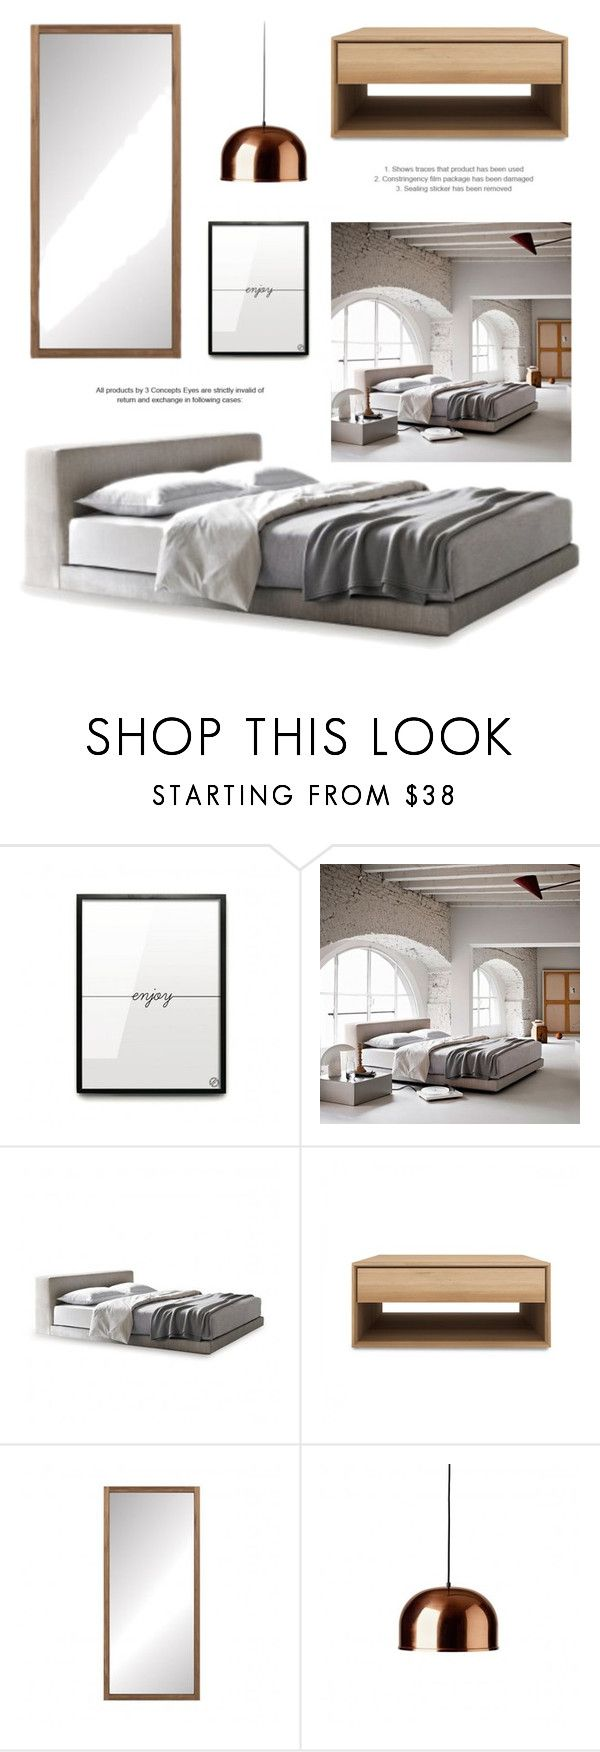 """""""Minimalistic Bedroom Decor"""" by lovethesign-eu ❤ liked on Polyvore featuring interior, interiors, interior design, home, home decor, interior decorating, Ivano Redaelli, Menu, bedroom and Home"""